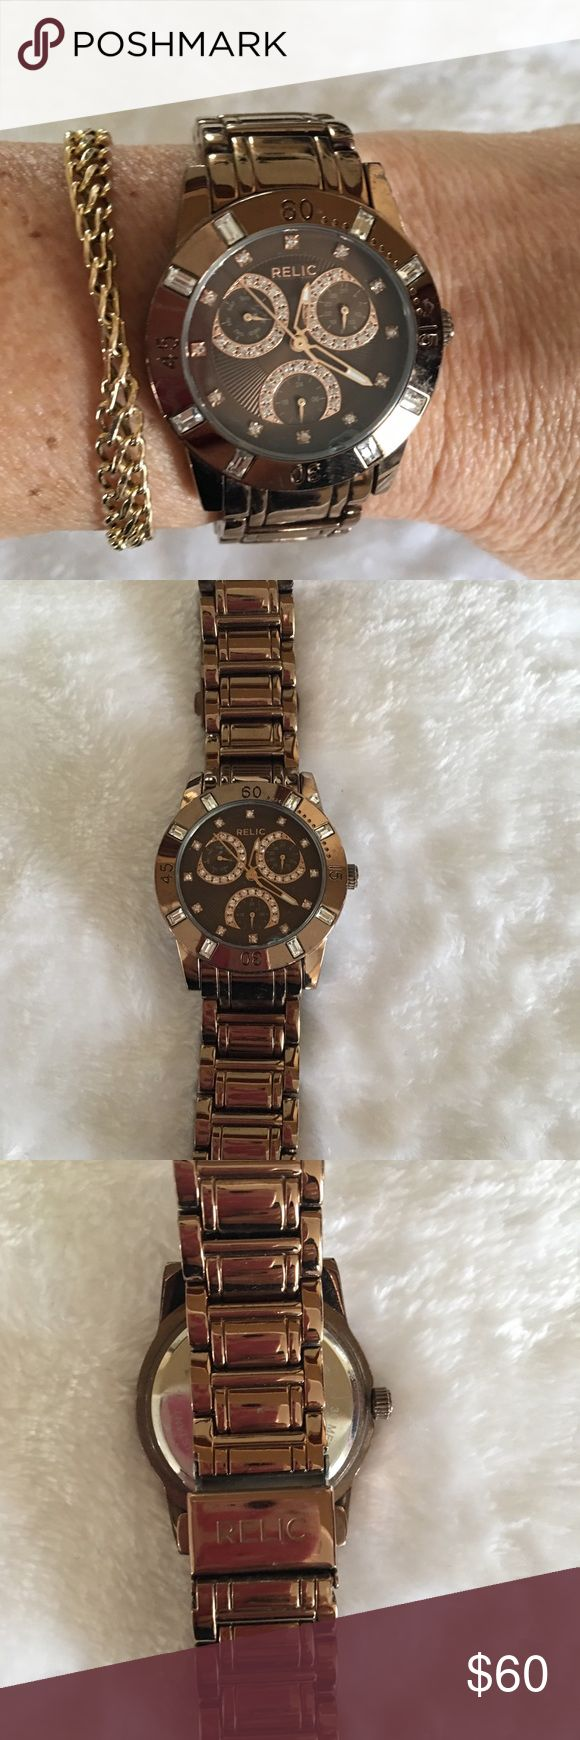 Relic Watch Beautiful chocolate gold with crystal accents. Selling because I wear my Apple Watch daily. Excellent working condition.  A real beauty. Relic Accessories Watches